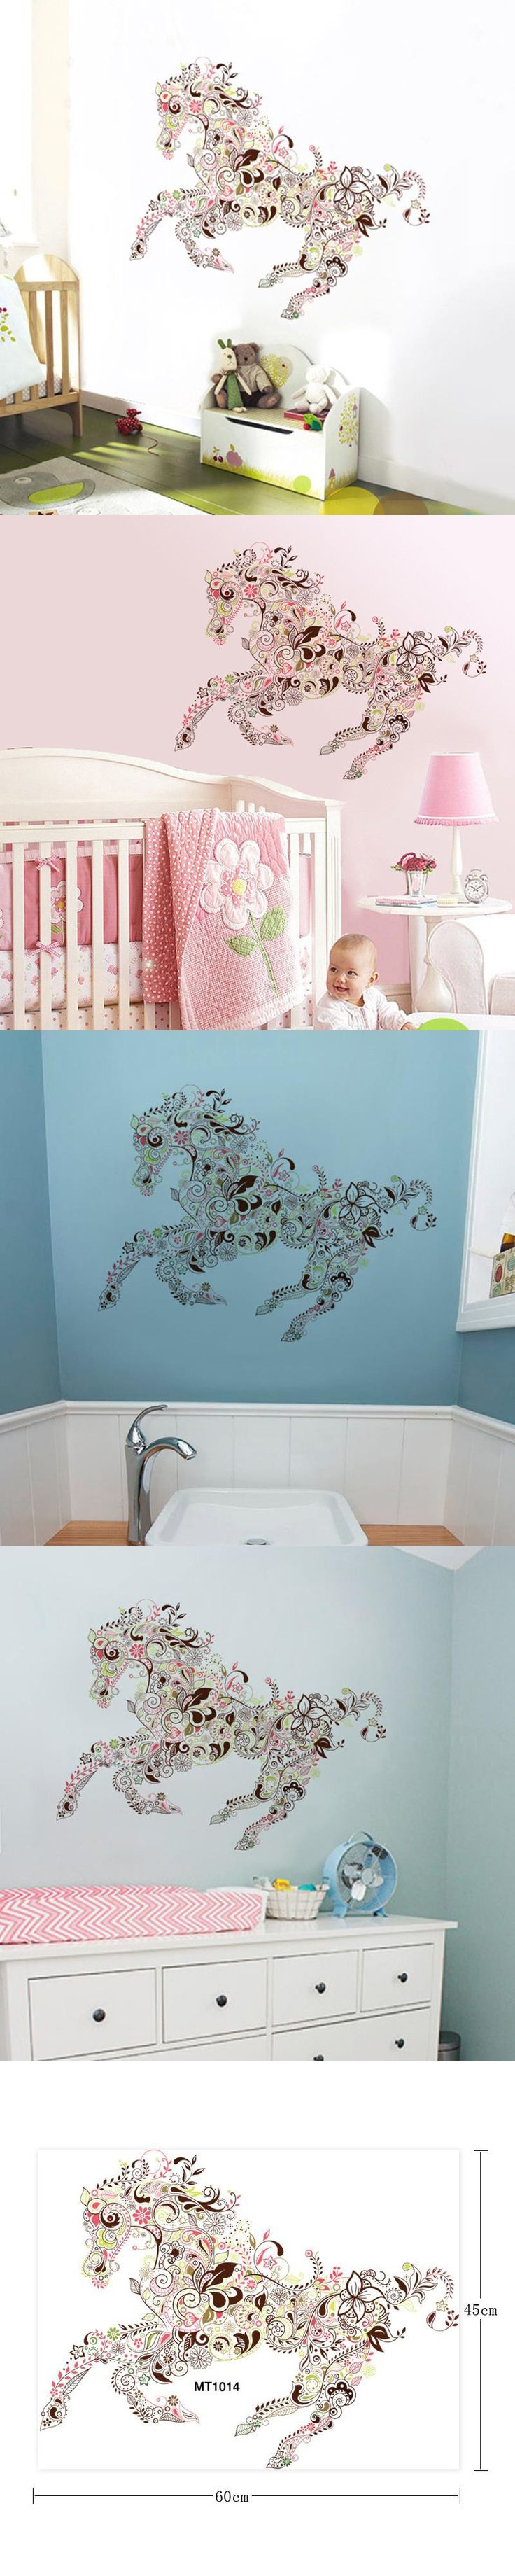 45*60cm Creative Colorful Horse Pattern Wall Stickers For Kids Room  Livingroom Waterproof Art Horse Mural Wall Decal Home Decor Part 58